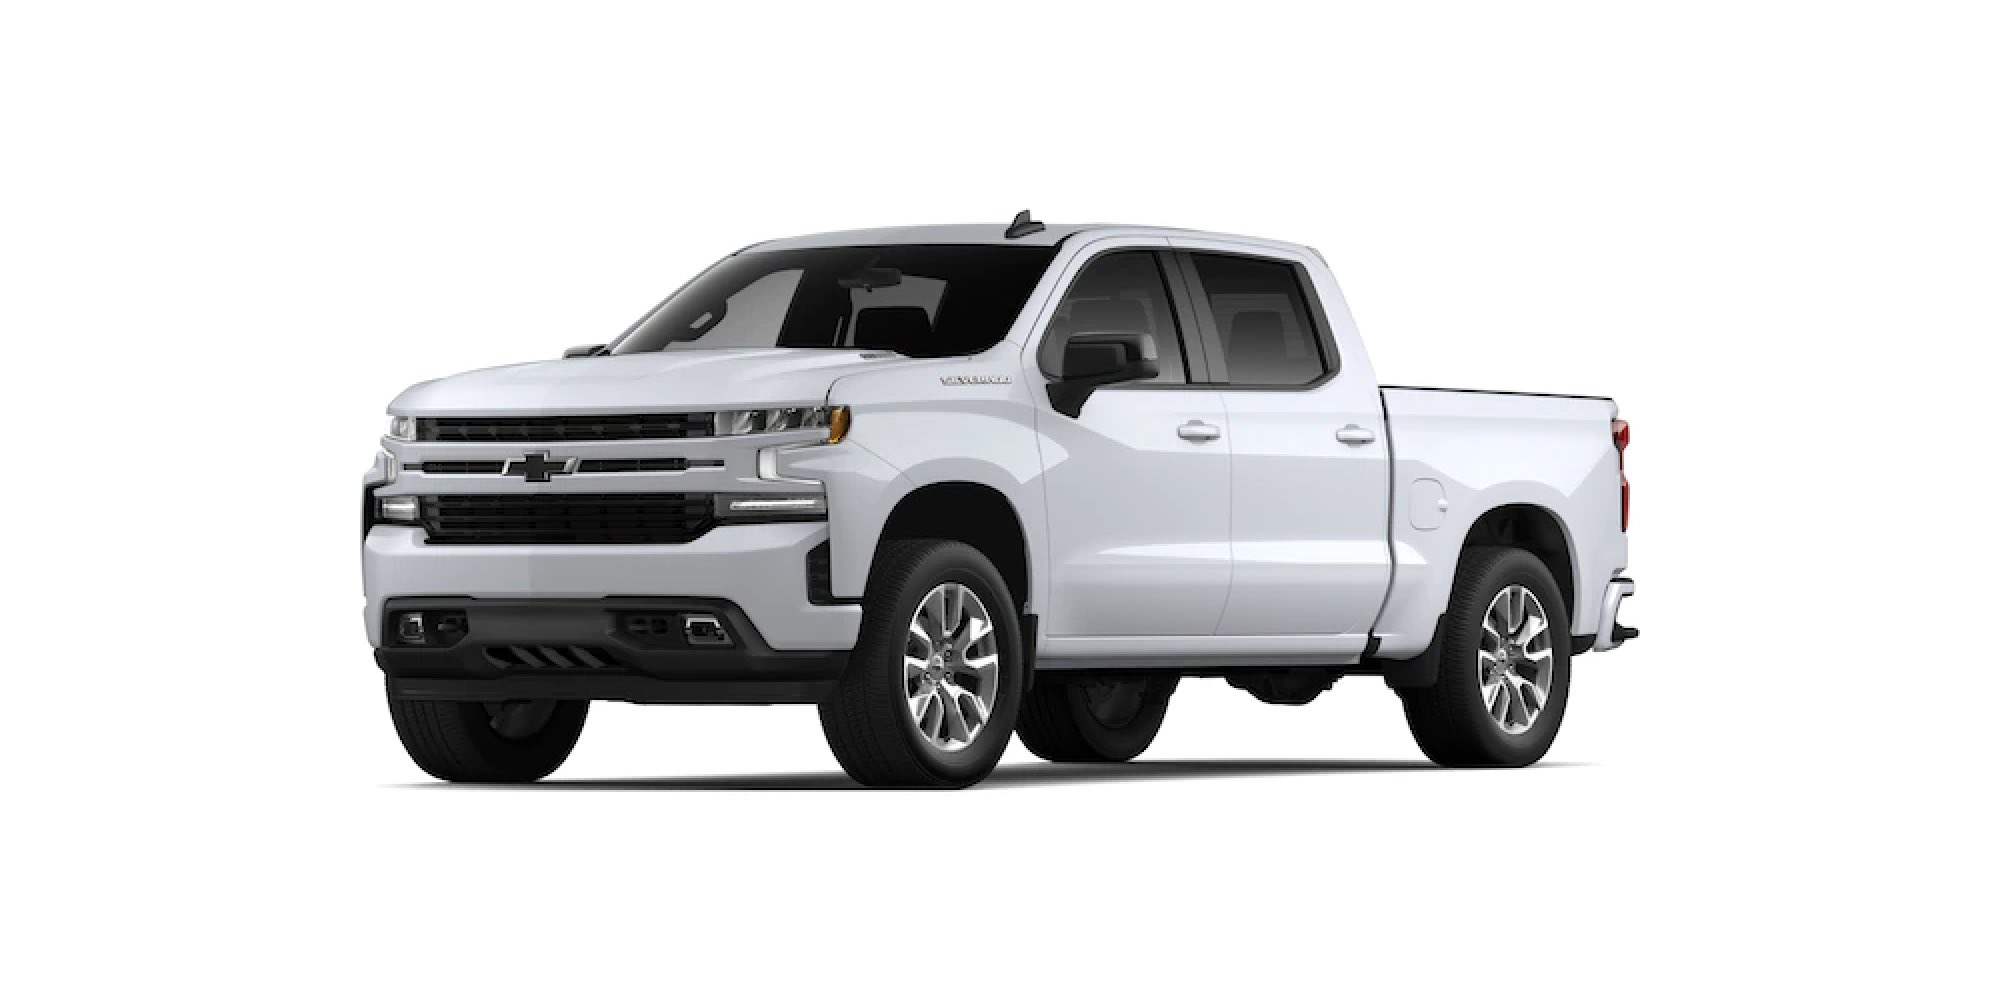 2021 Chevy Silverado in SUMMIT WHITE